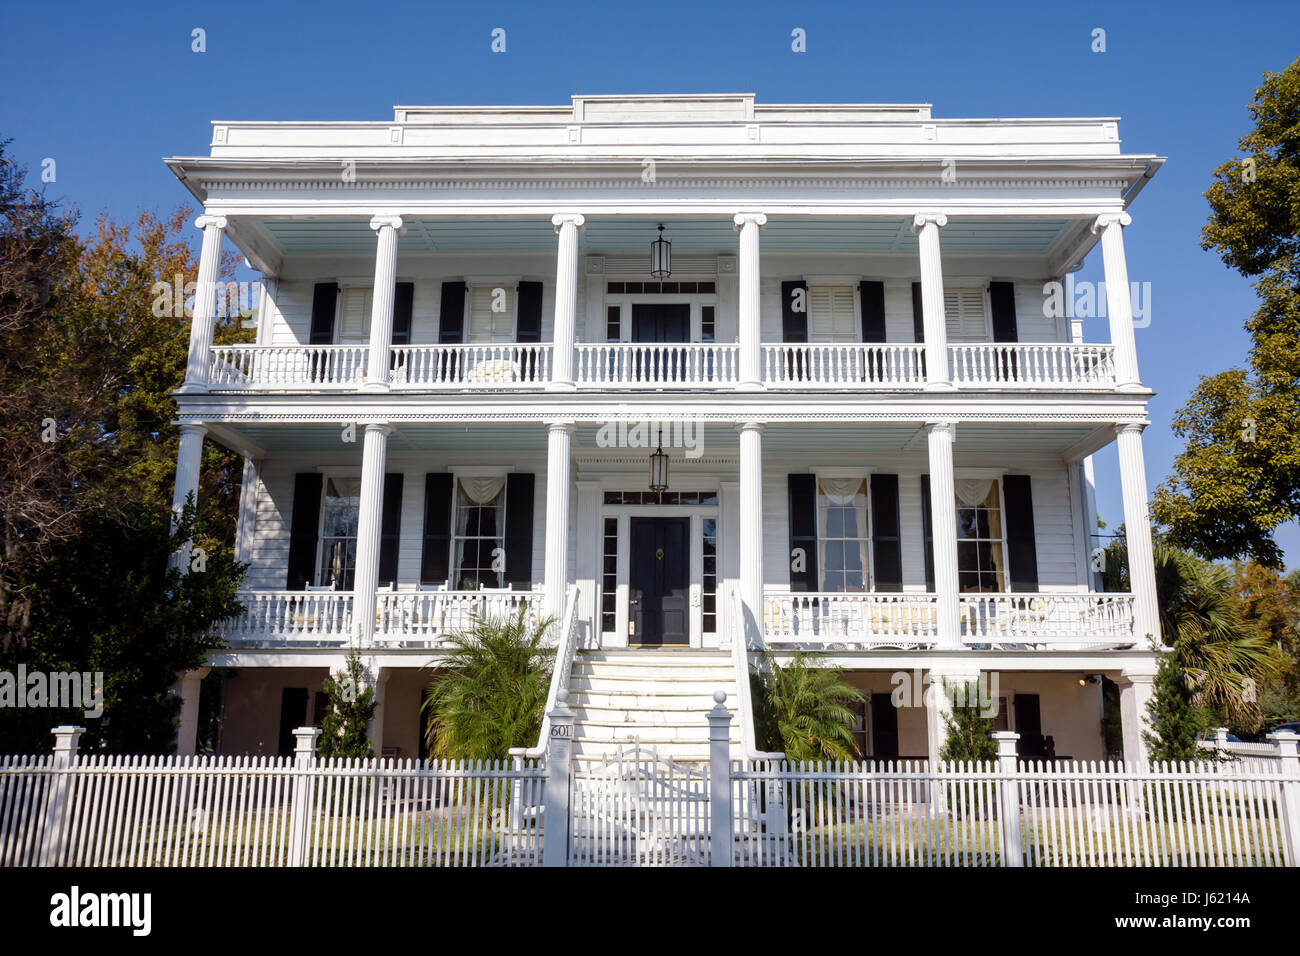 South Carolina Beaufort Lowcountry Southern National Historic Landmark District Bay Street Lewis Reeve Sams House - Stock Image